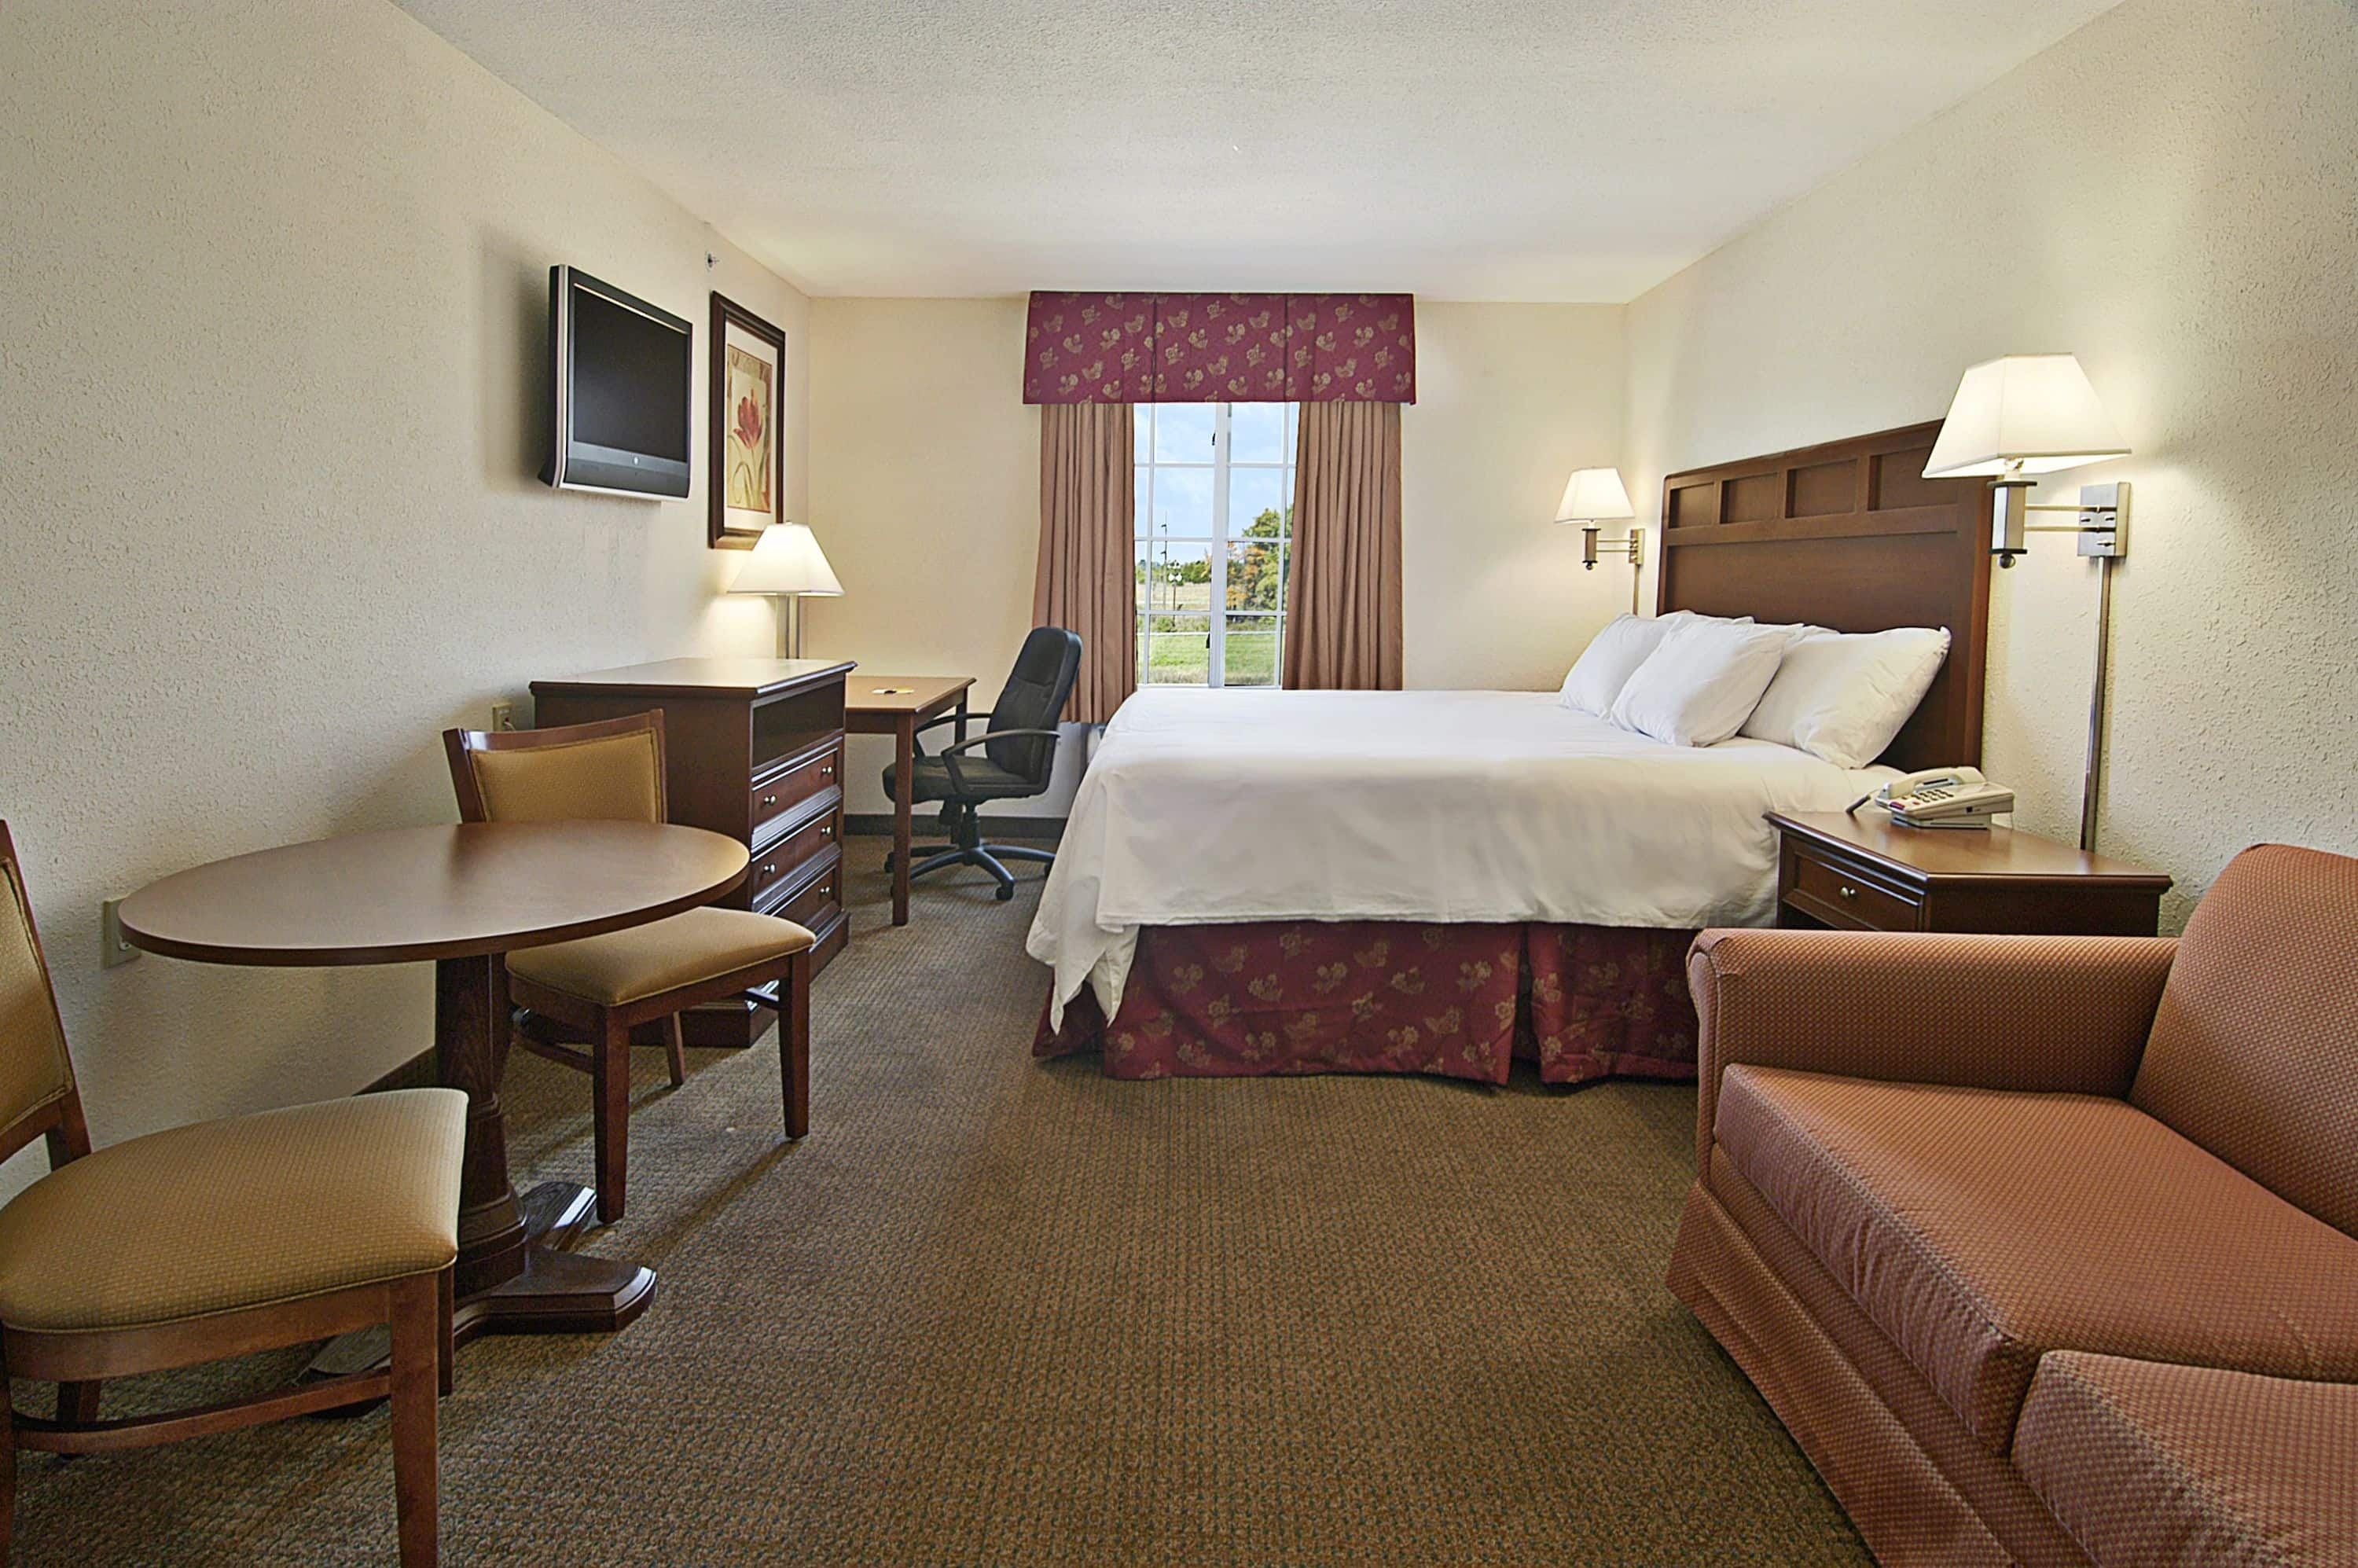 Guest Room At The Super 8 Bowling Green North In Bowling Green, Kentucky